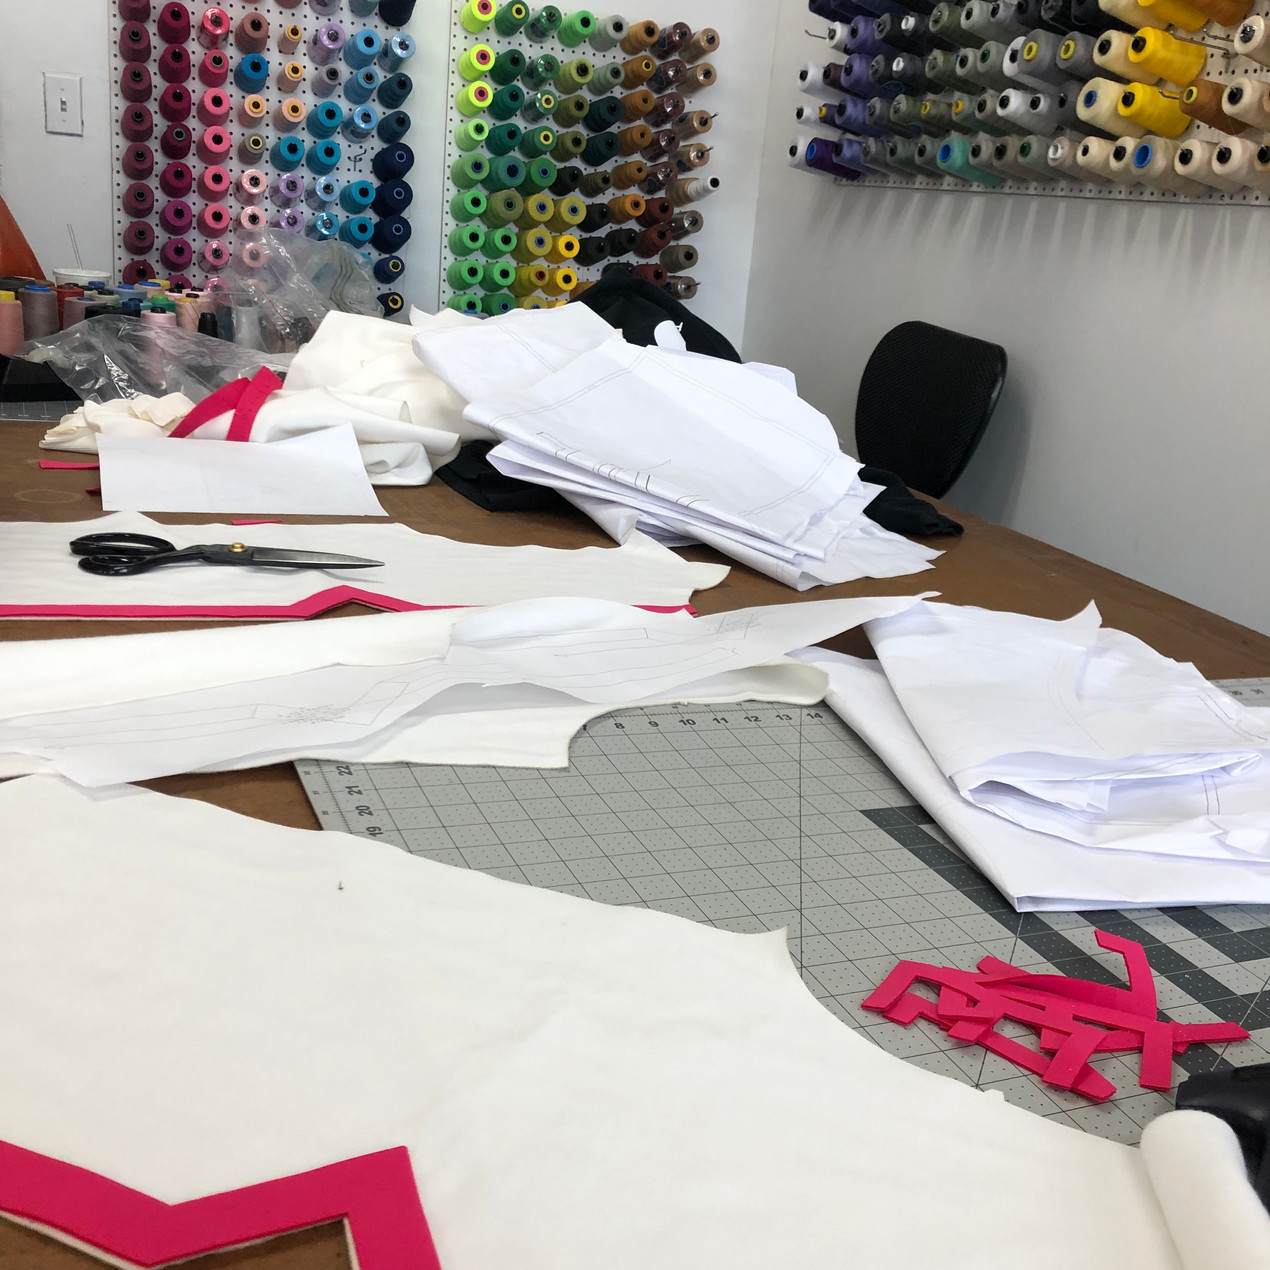 sample room table with patterns and thread